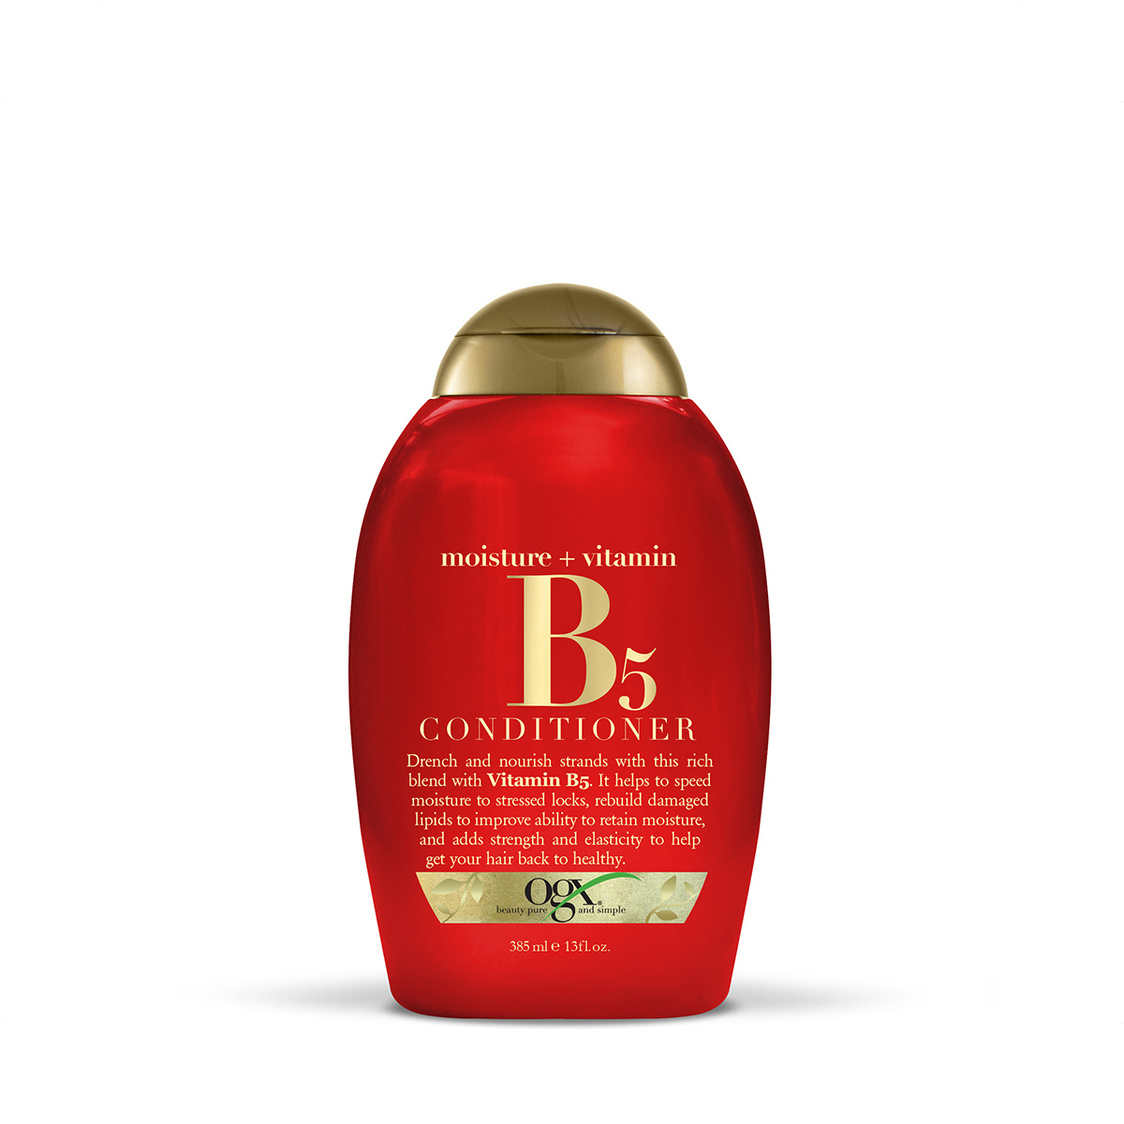 MoistureVitamin B5 Conditioner 385ml